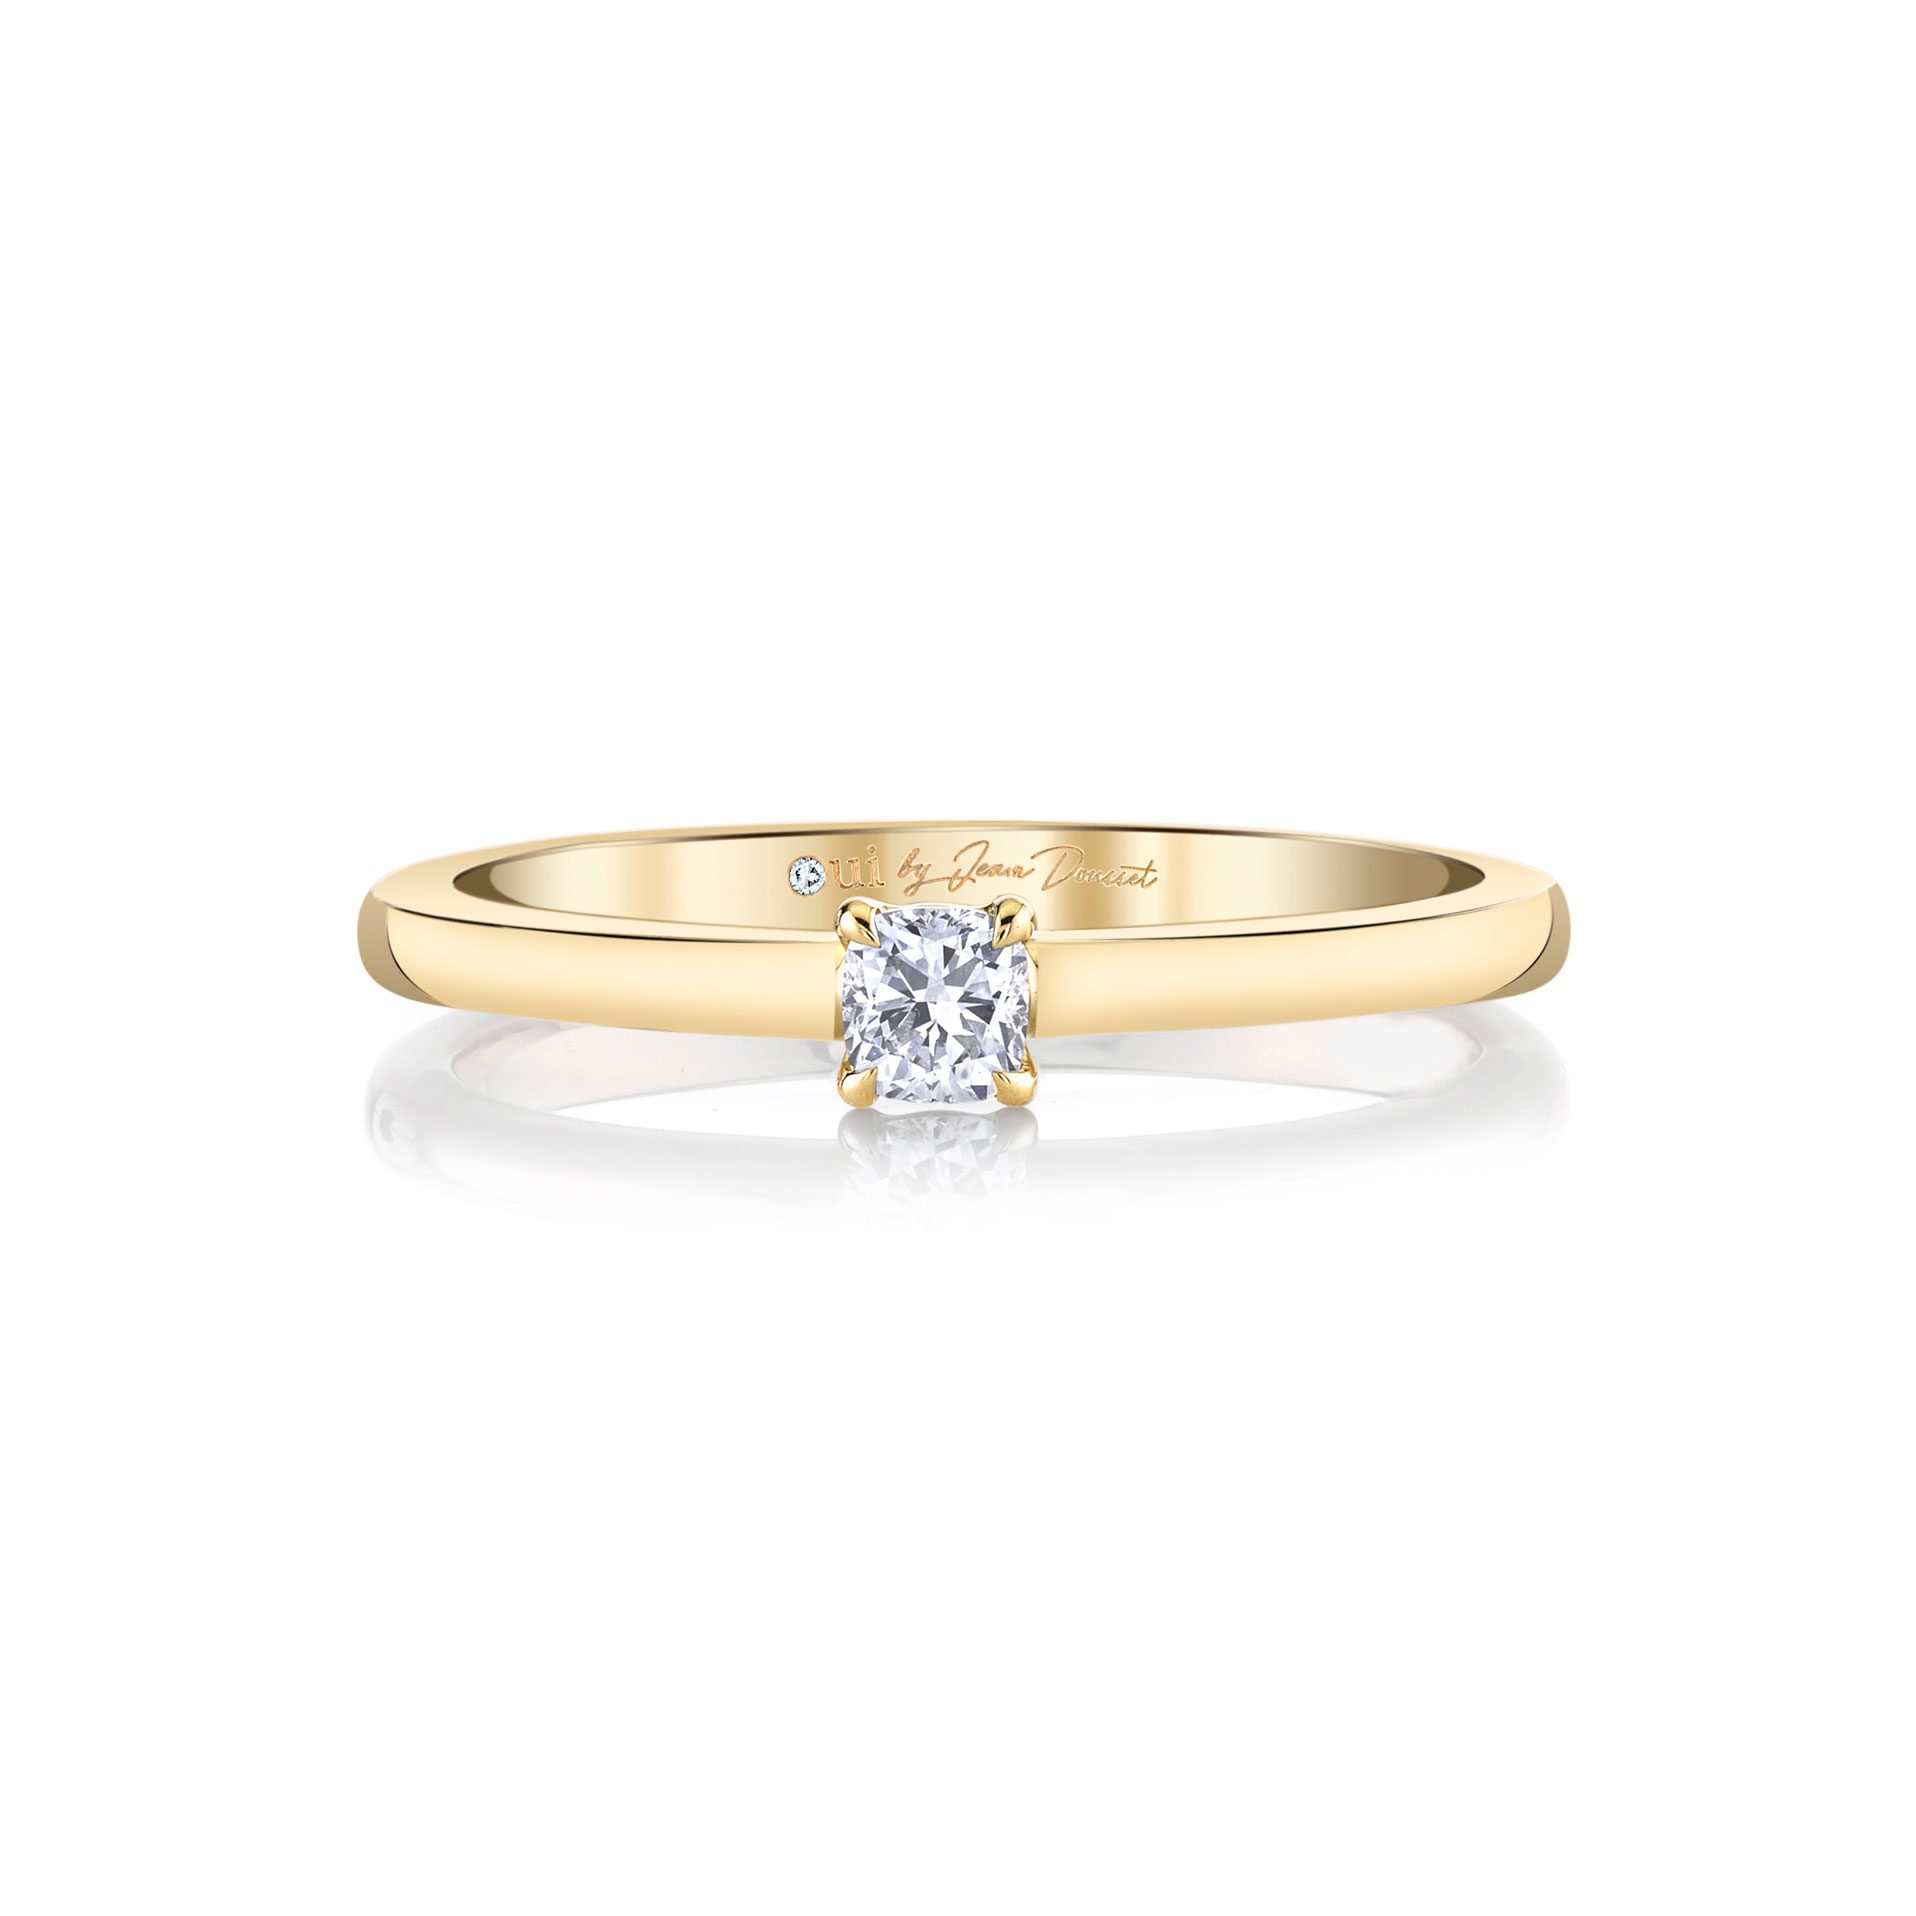 La Petite Cushion Diamond Wedding Band in 18k Yellow Gold Front View by Oui by Jean Dousset